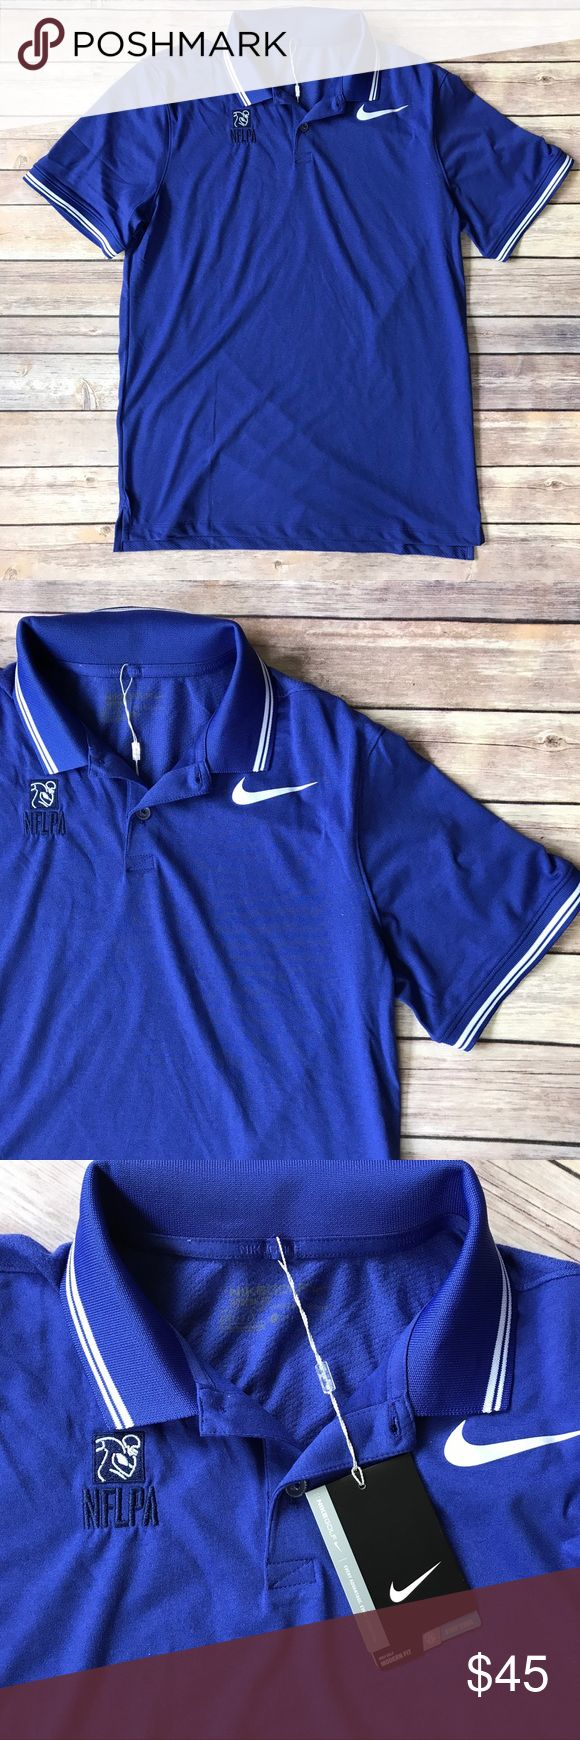 Nike golf dry tipped slim fit polo shirt blue M Nike Golf Dry Tipped men's polo shirt in blue (nearly purple in some lights). Nike swoosh logo in white. Men's size medium. NFLPA monogram on the chest.  This shirt is new with the tags still attached. Nike Shirts Polos